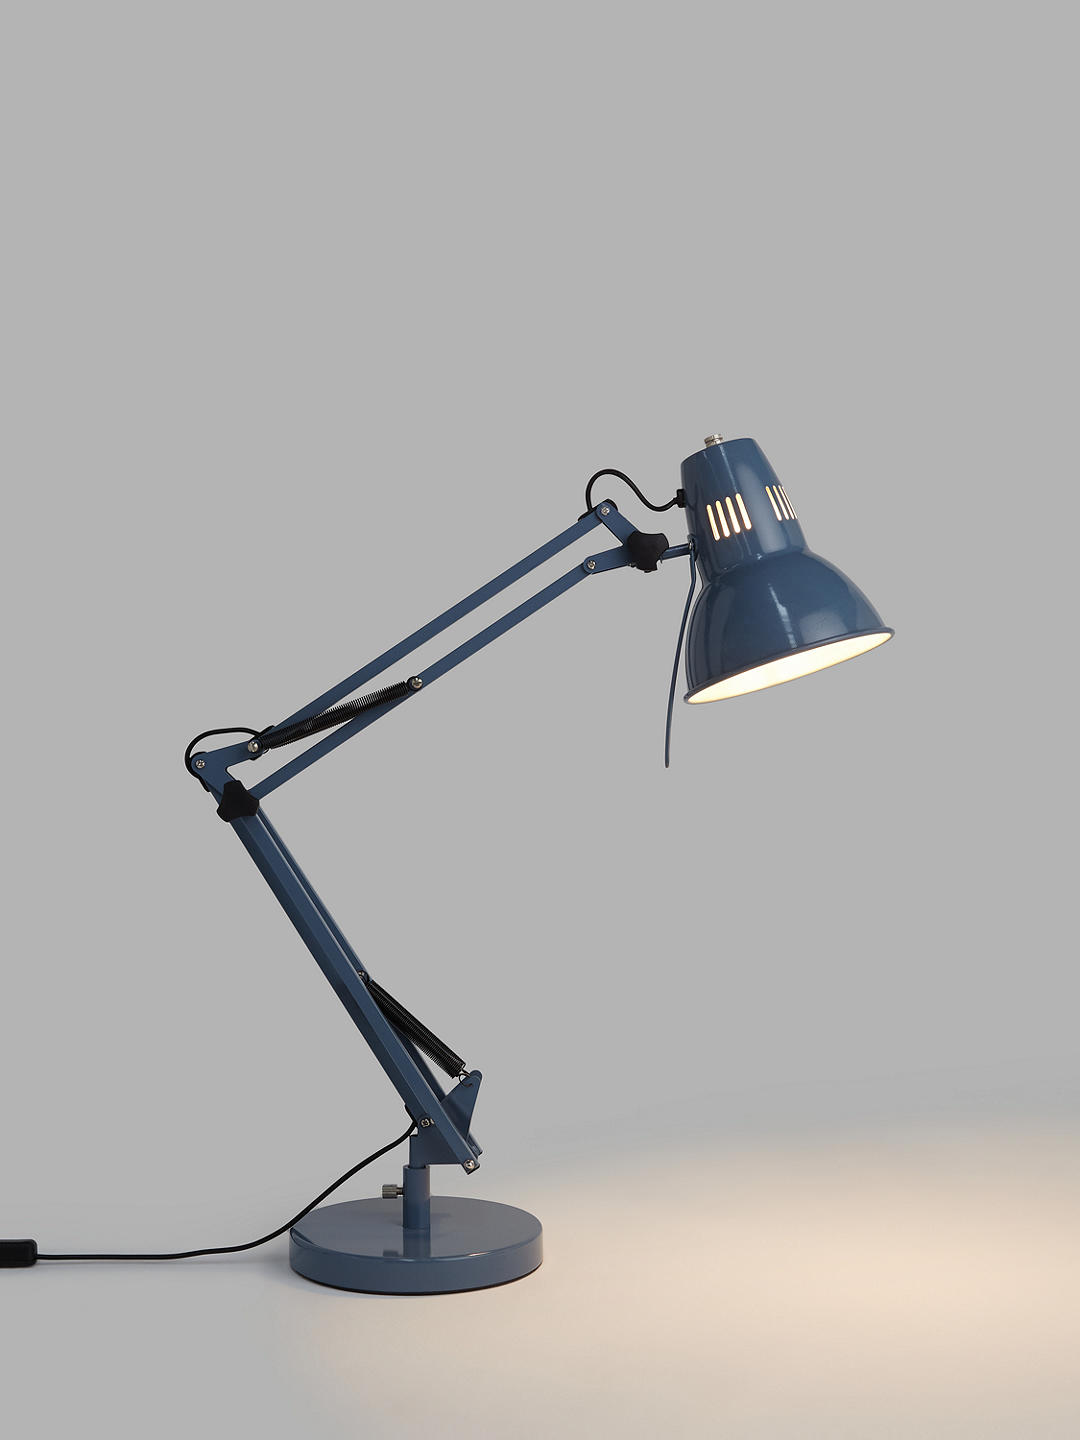 This task lamp from John Lewis costs a whopping £60